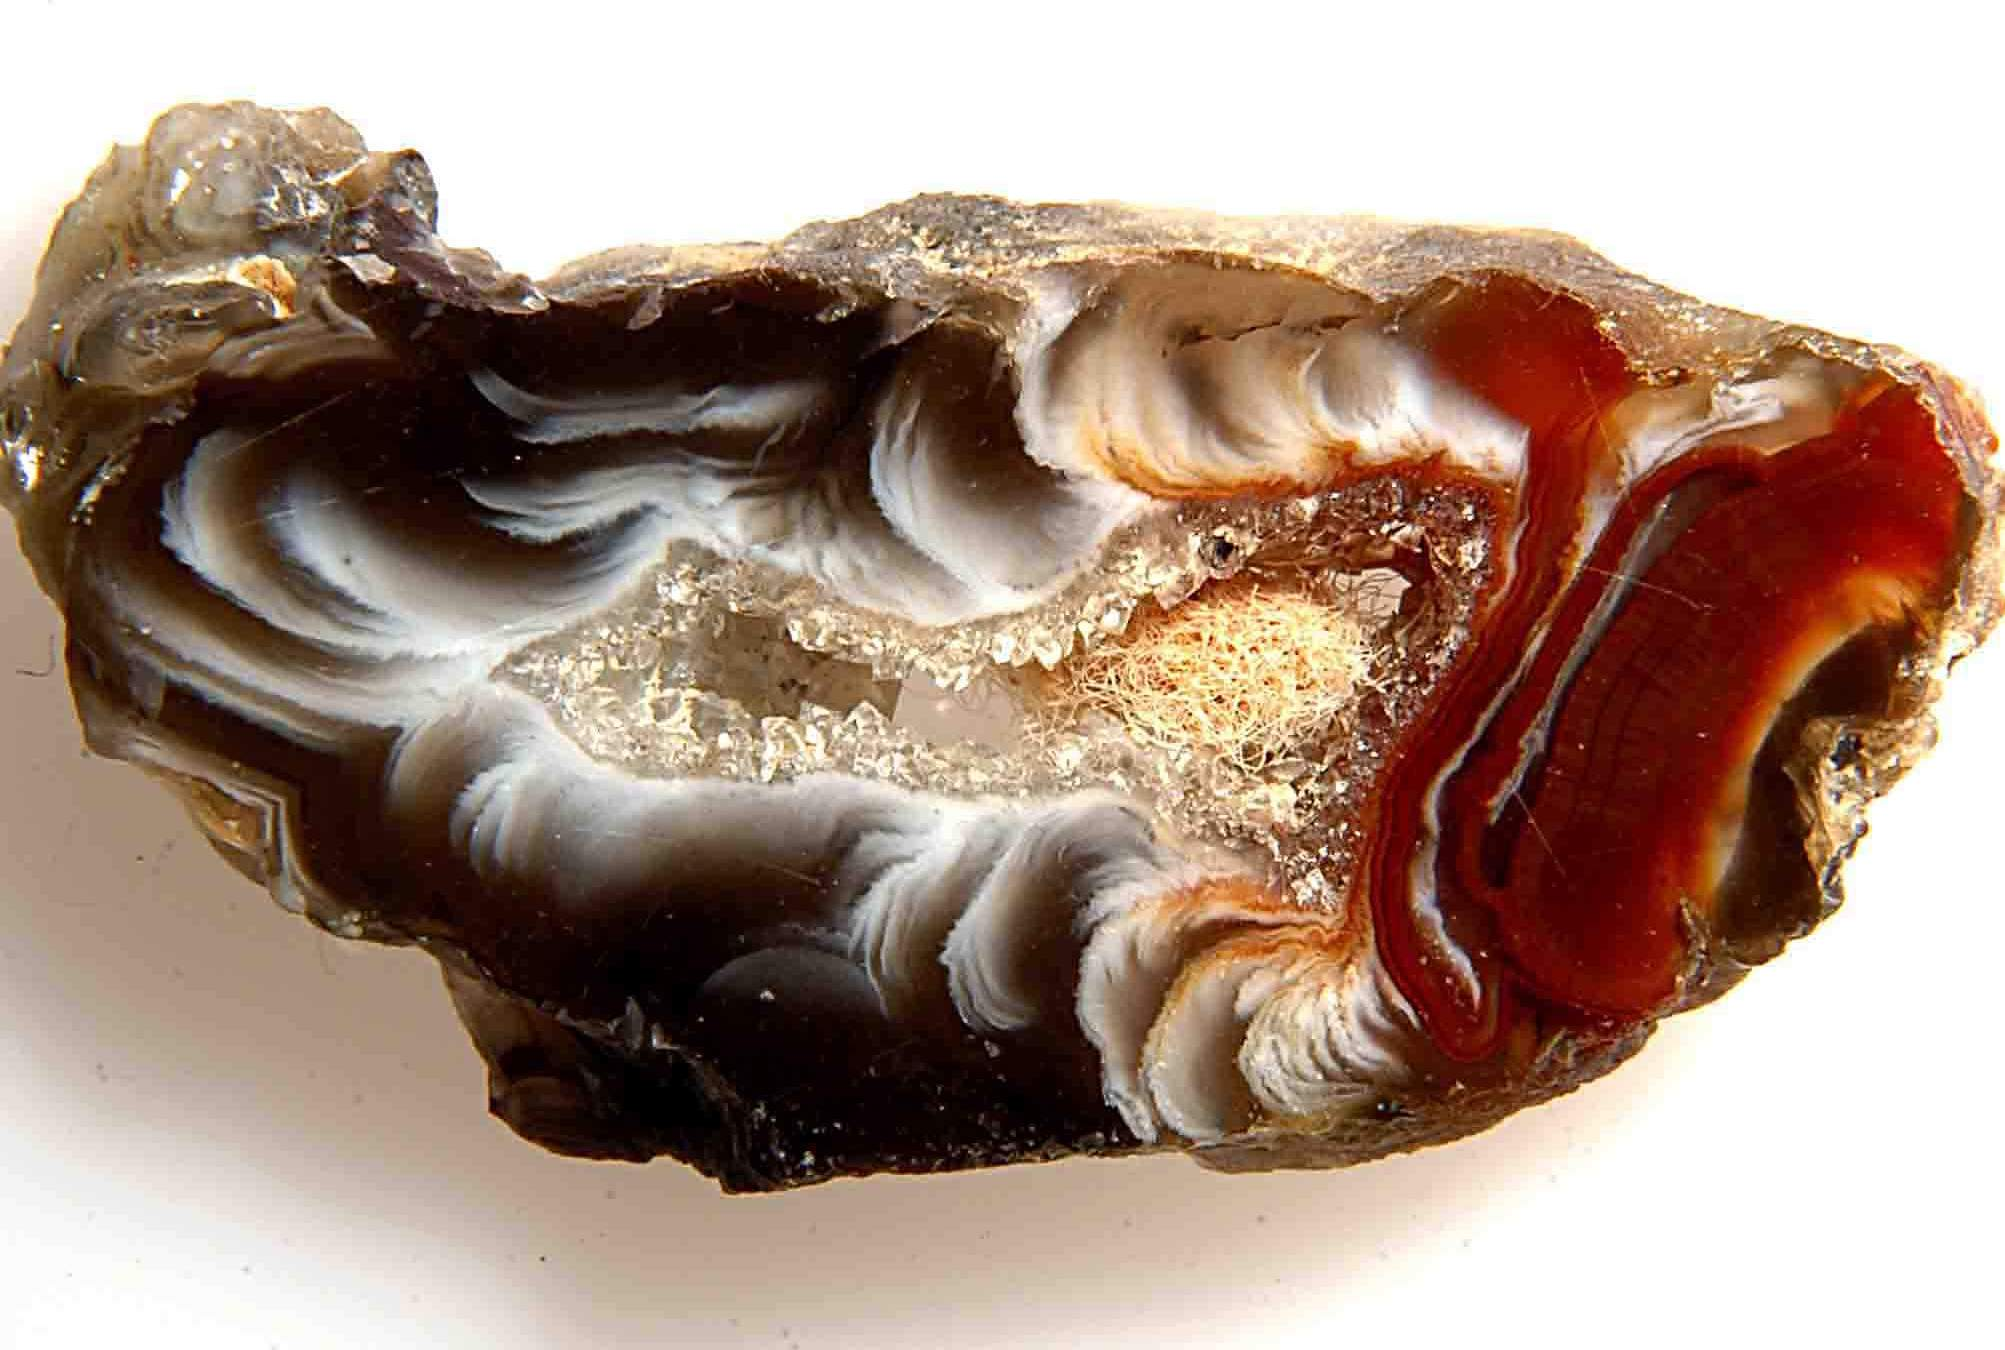 The ancient Egyptians endowed agate with magical qualities, while the priests cleared the room of evil spirits with it